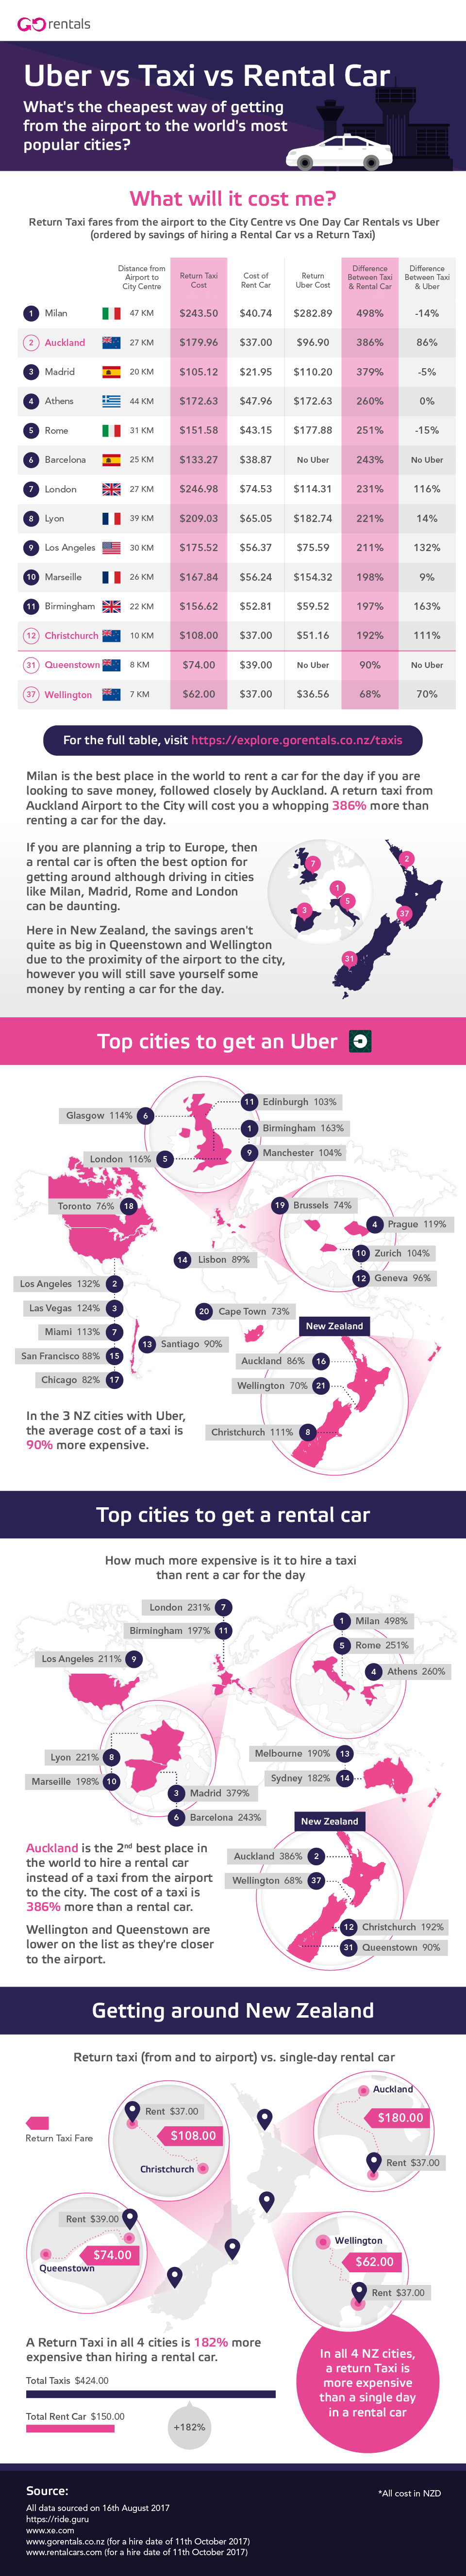 Rental Cars vs Uber vs Taxi - What's the Cheapest?